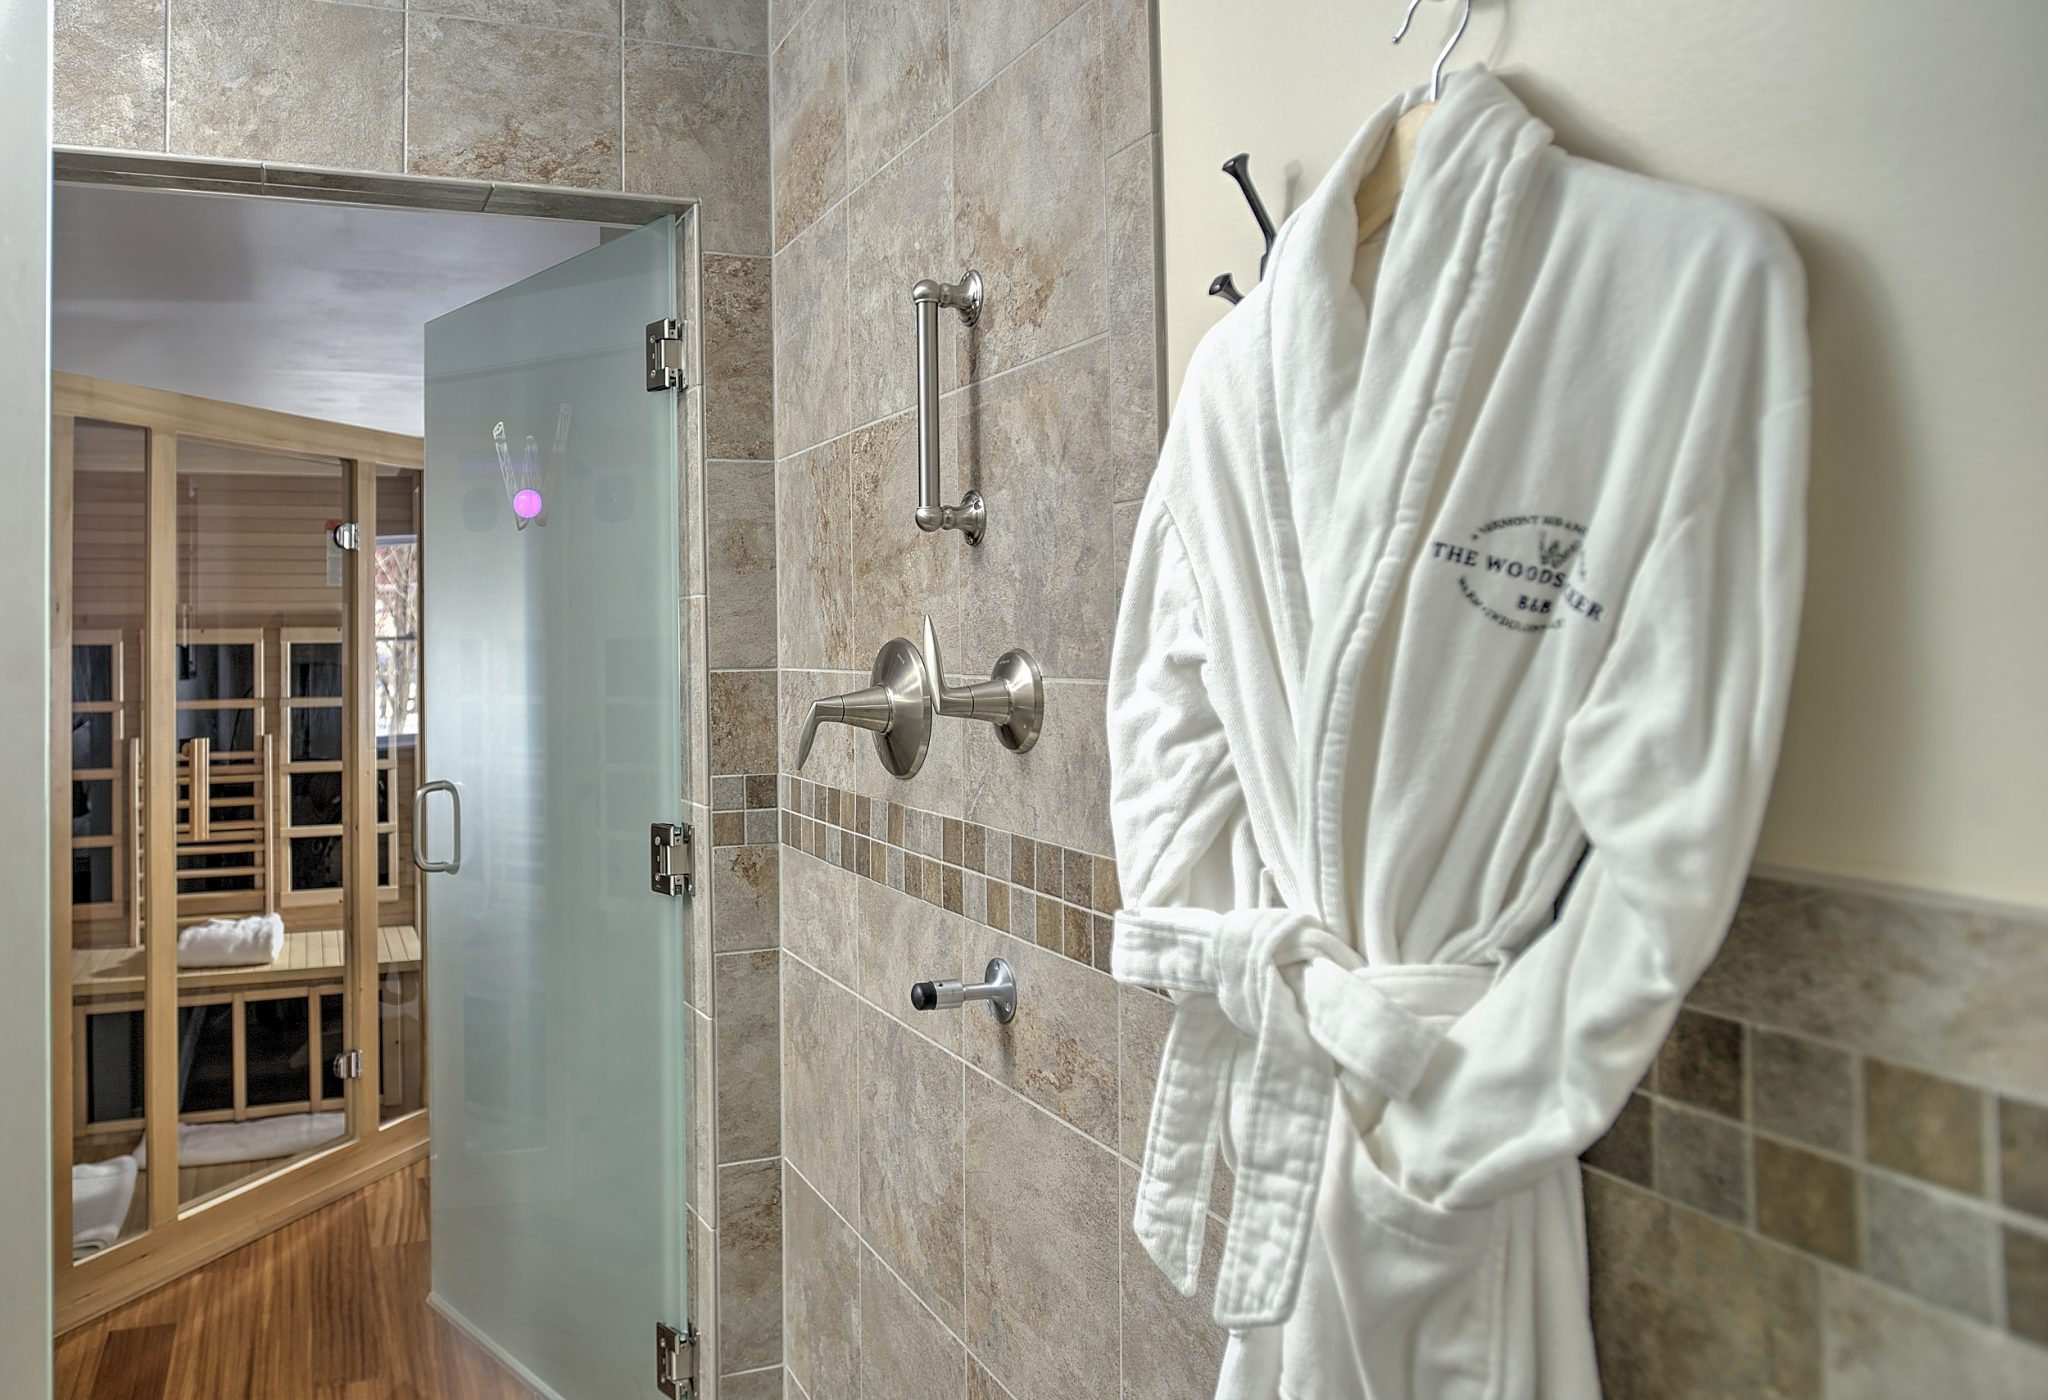 Robe and walk-in shower